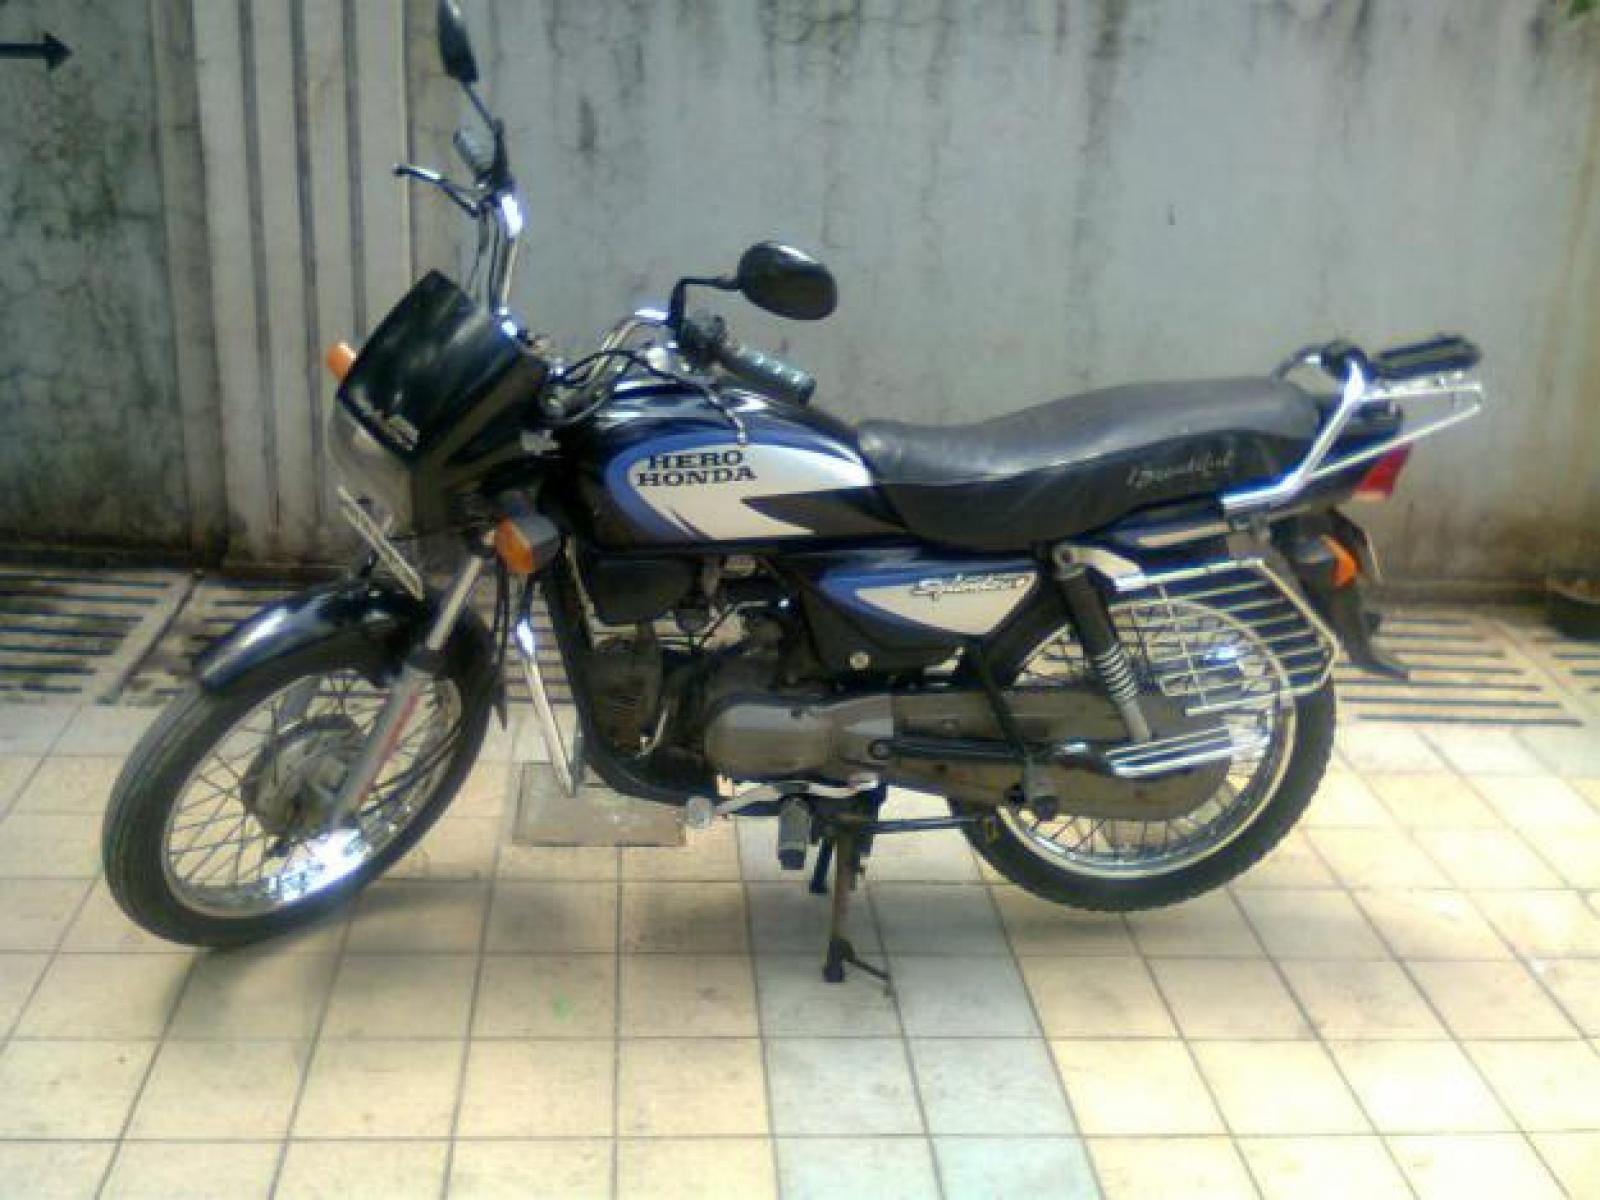 Hero Honda 125 Super Splendor images #74807